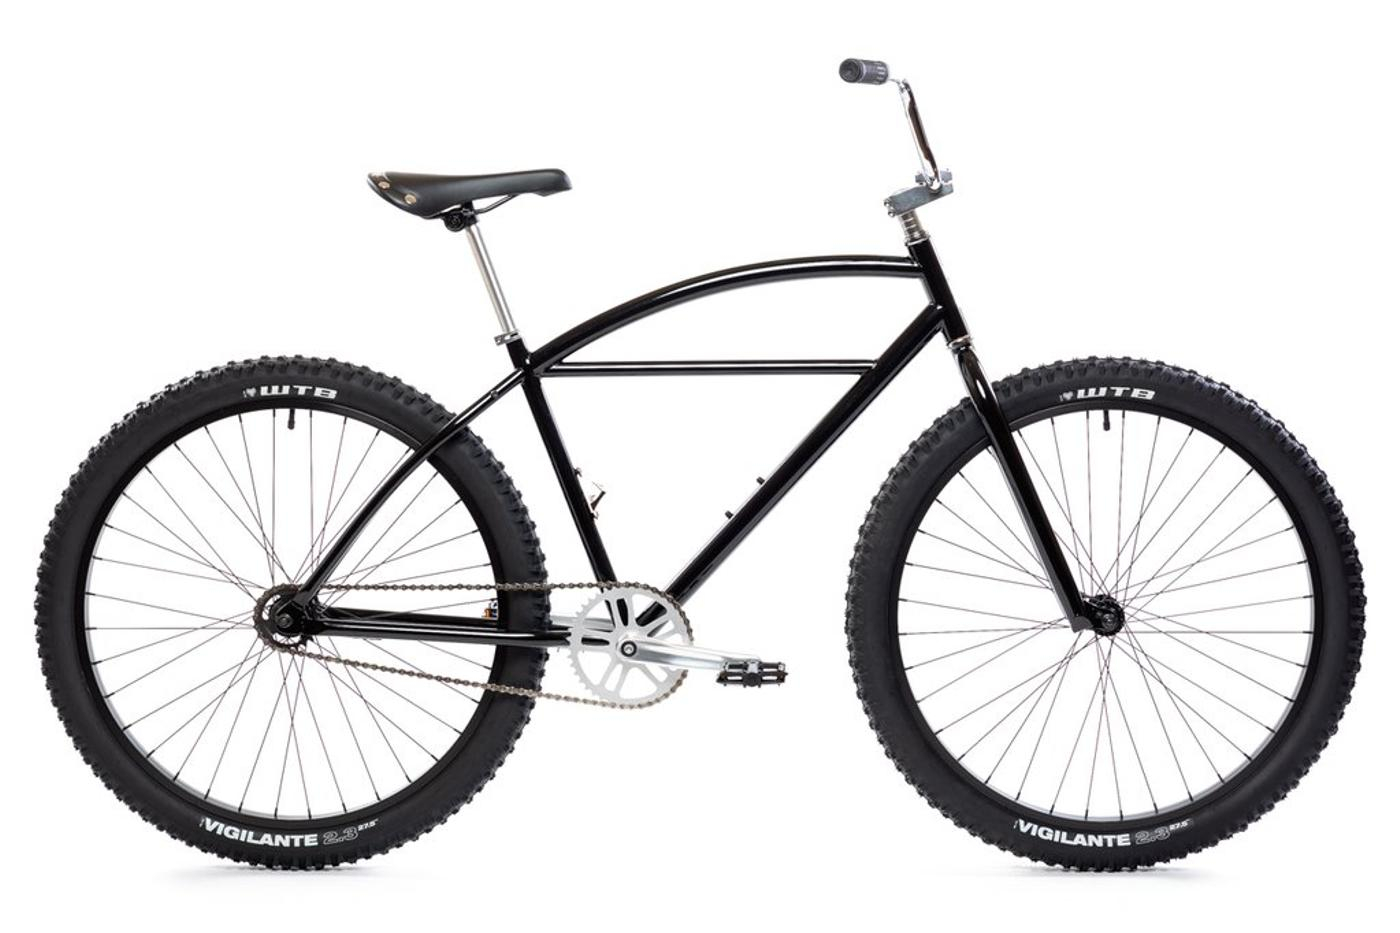 State Bicycle Co Releases a 27.5″ Wheeled Coaster Brake Cruiser